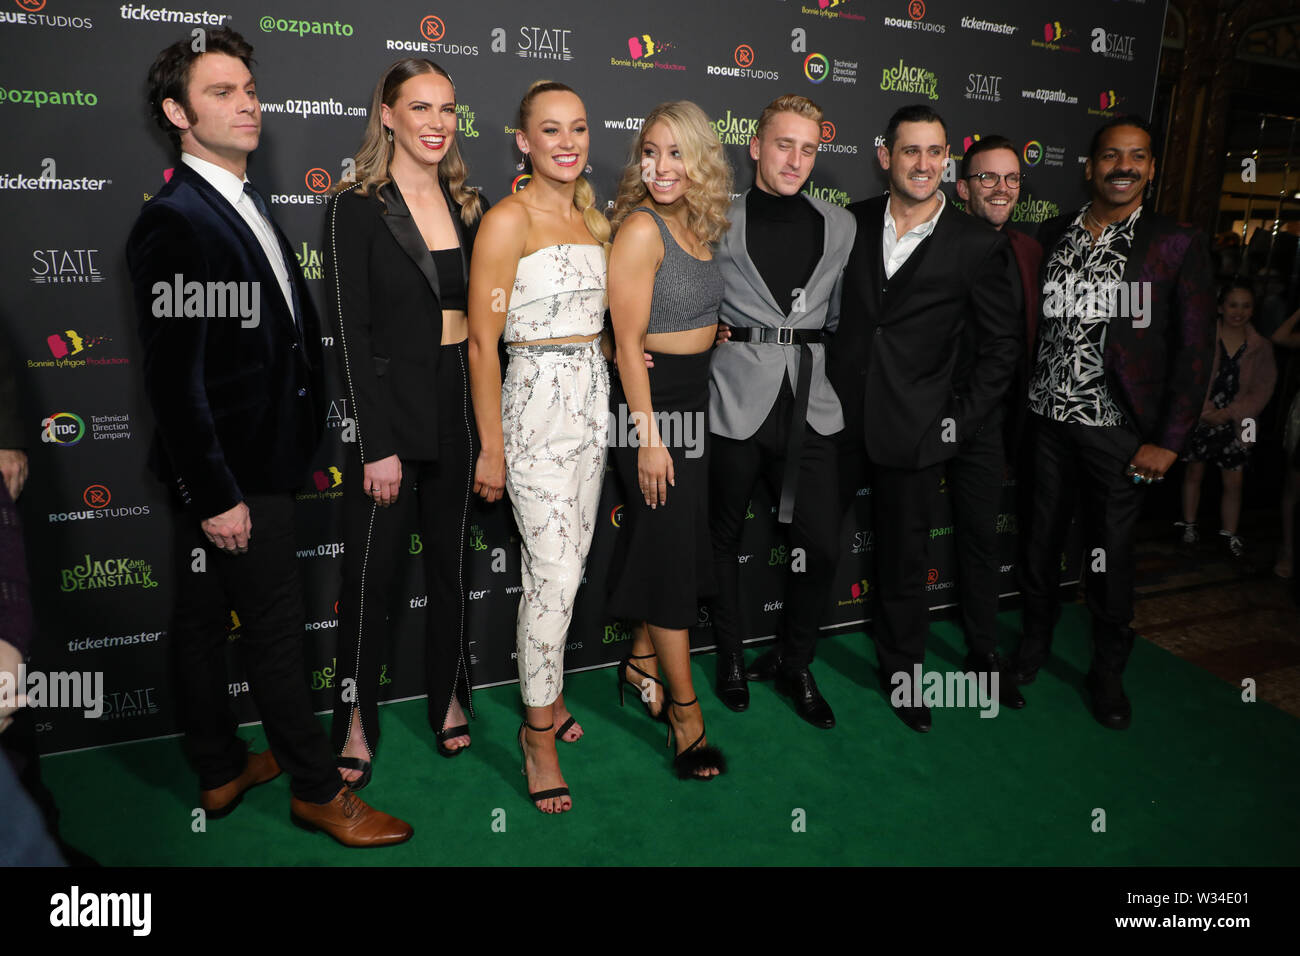 Sydney, Australia. 12th July 2019. Jack and the Beanstalk Giant 3D musical spectacular red carpet at the State Theatre. Pictured: cast and crew from the production. Credit: Richard Milnes/Alamy Live News Stock Photo